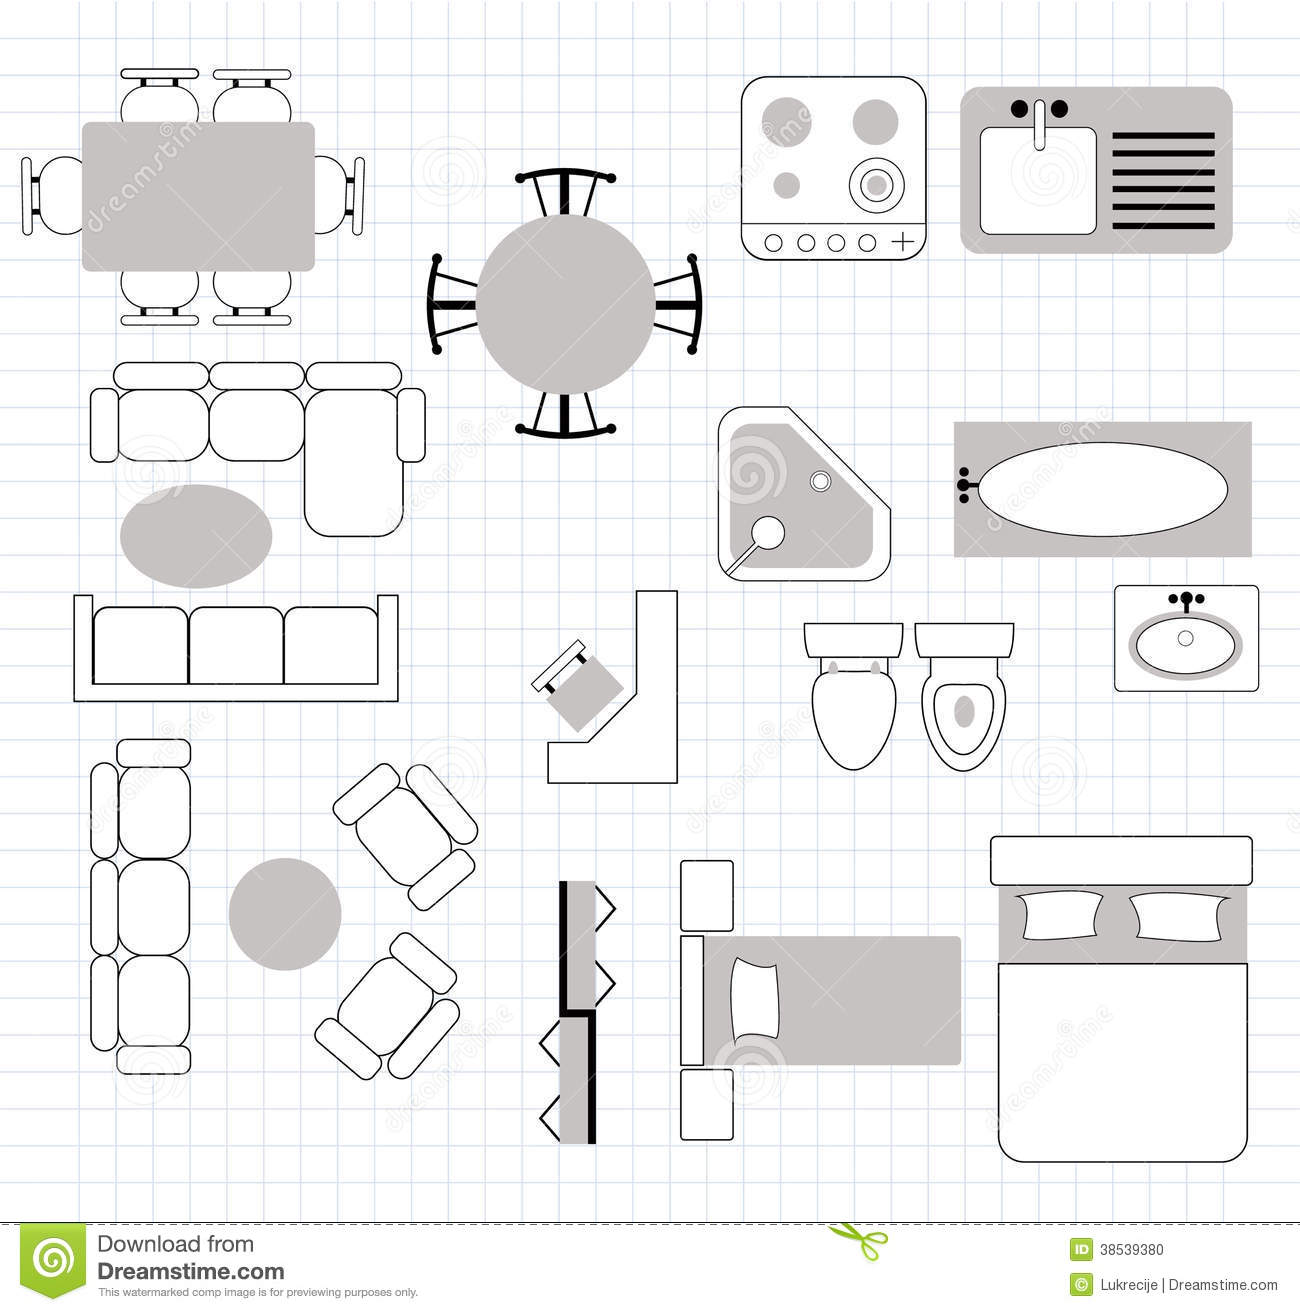 Clipart furniture floor plan clipground for Furniture placement templates free